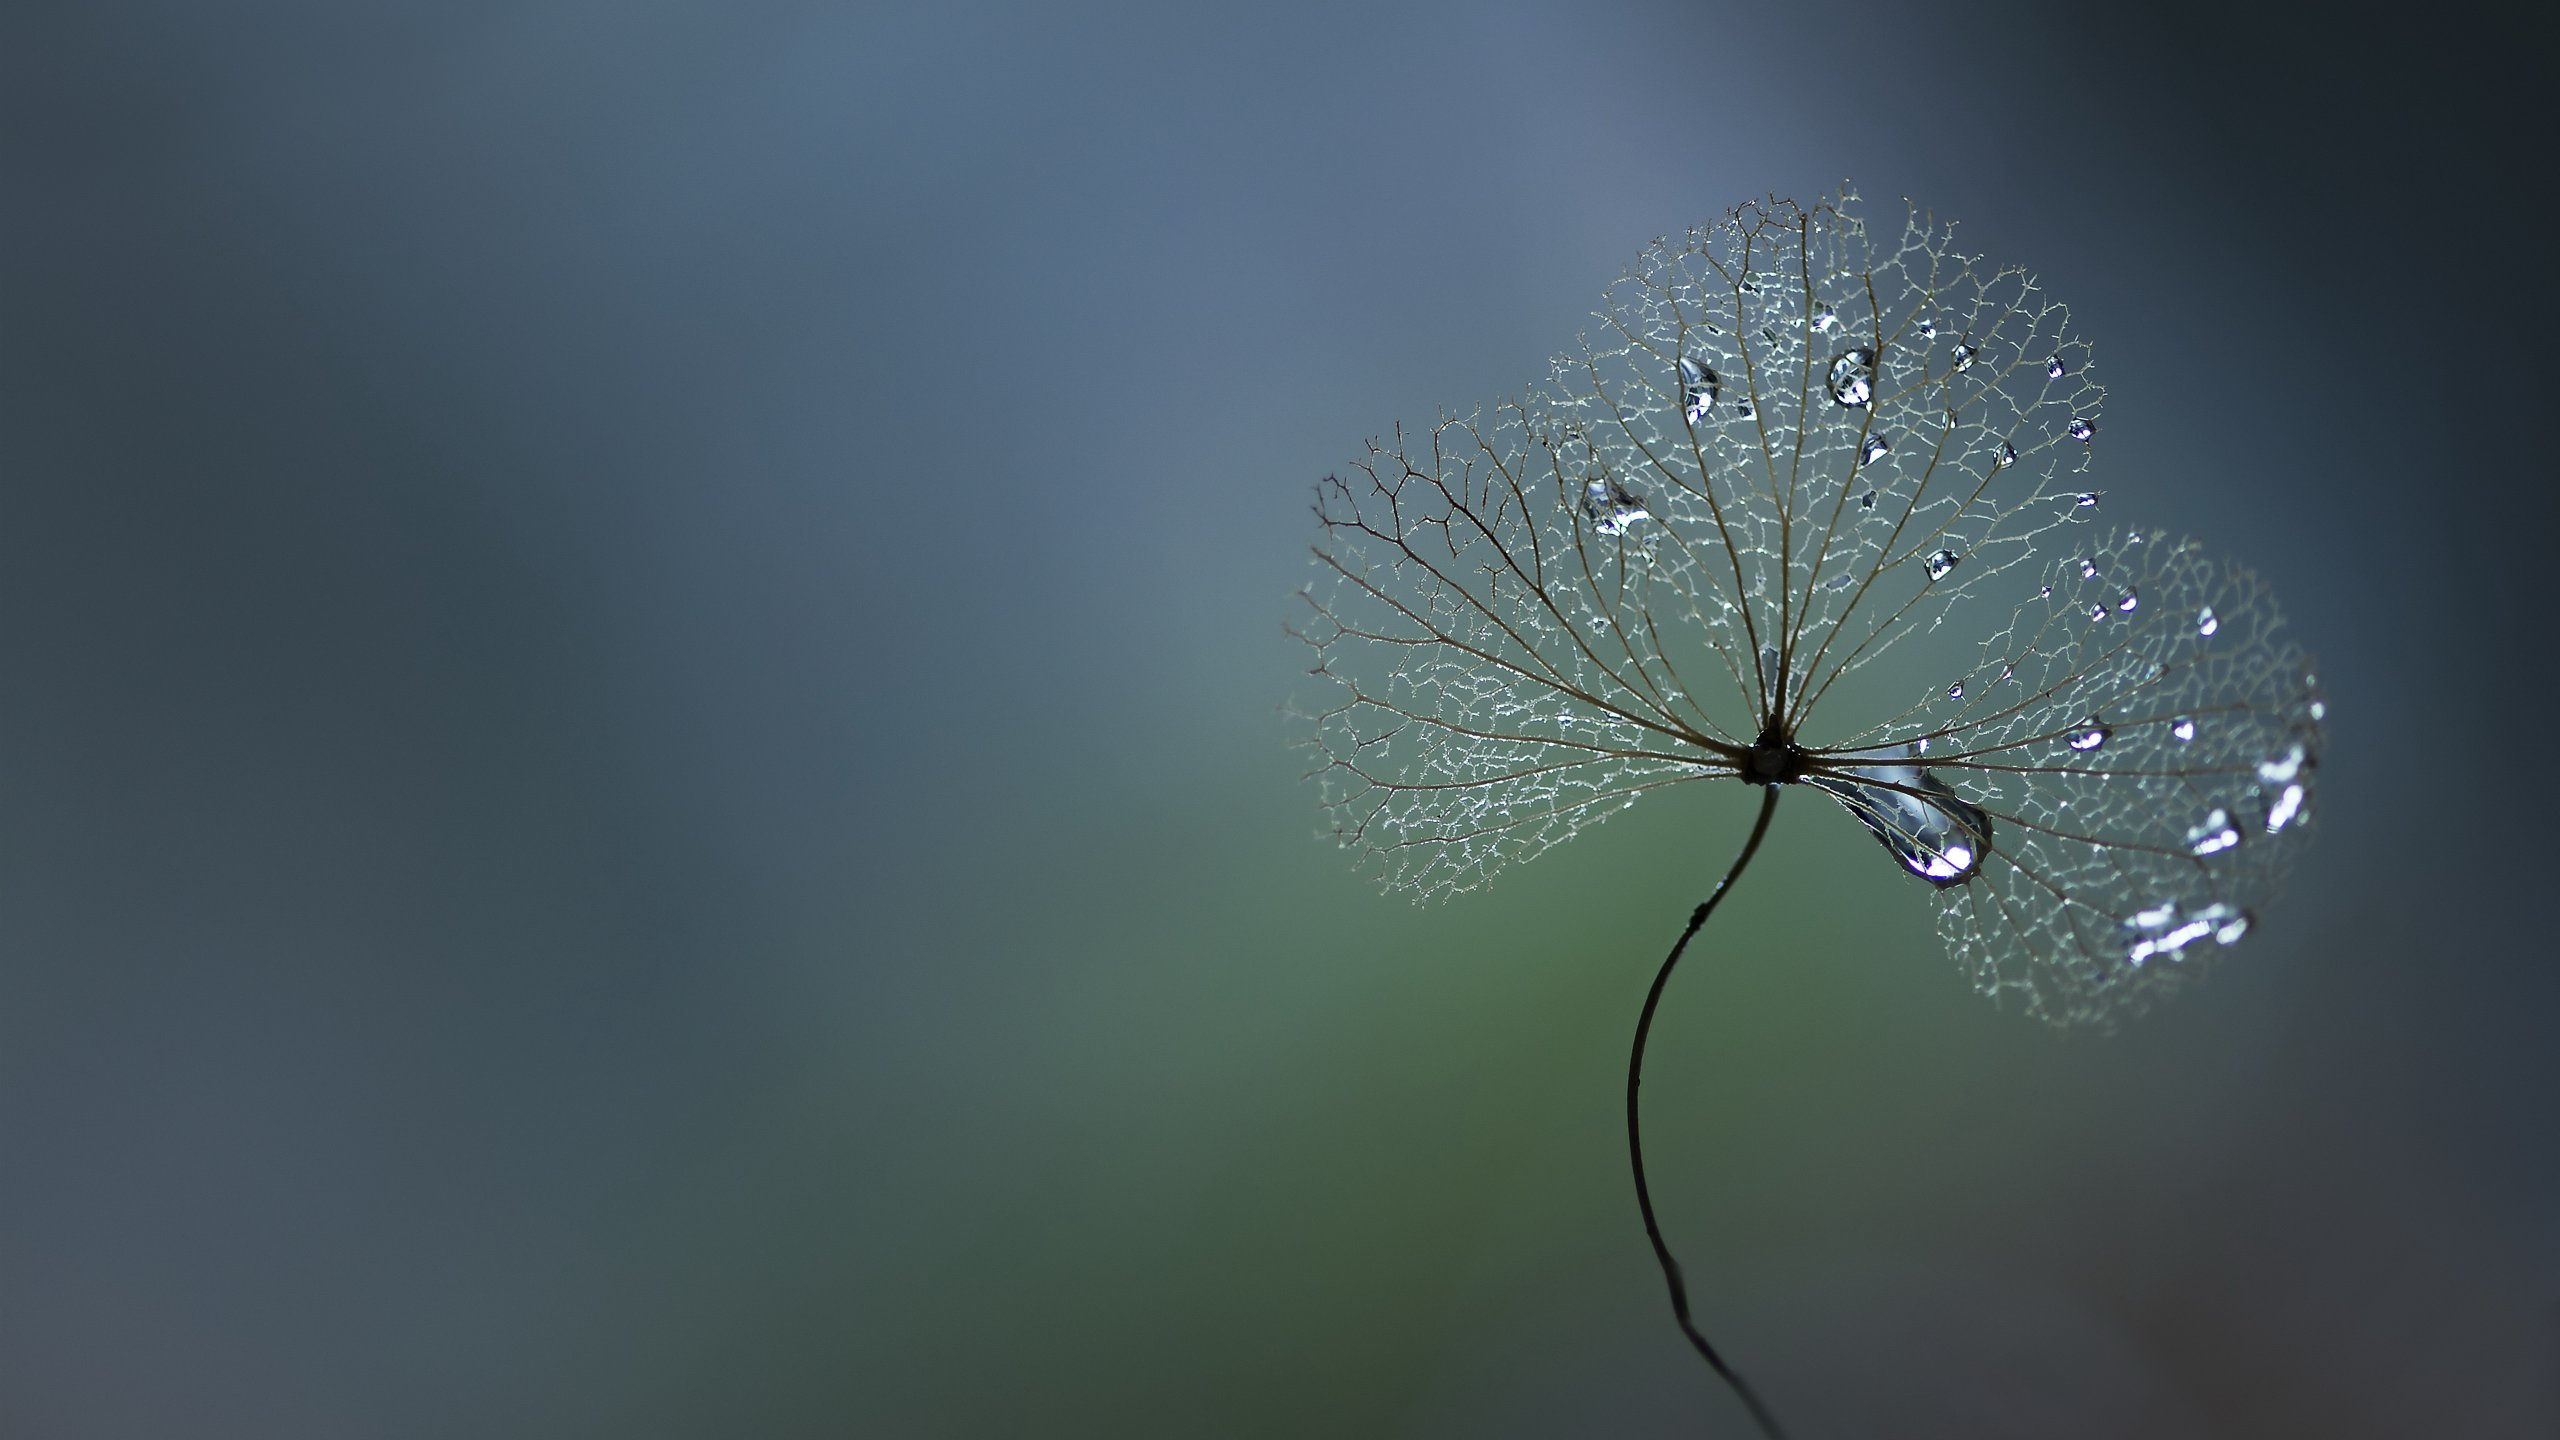 Plants-water-droplets-gray-background.jpg